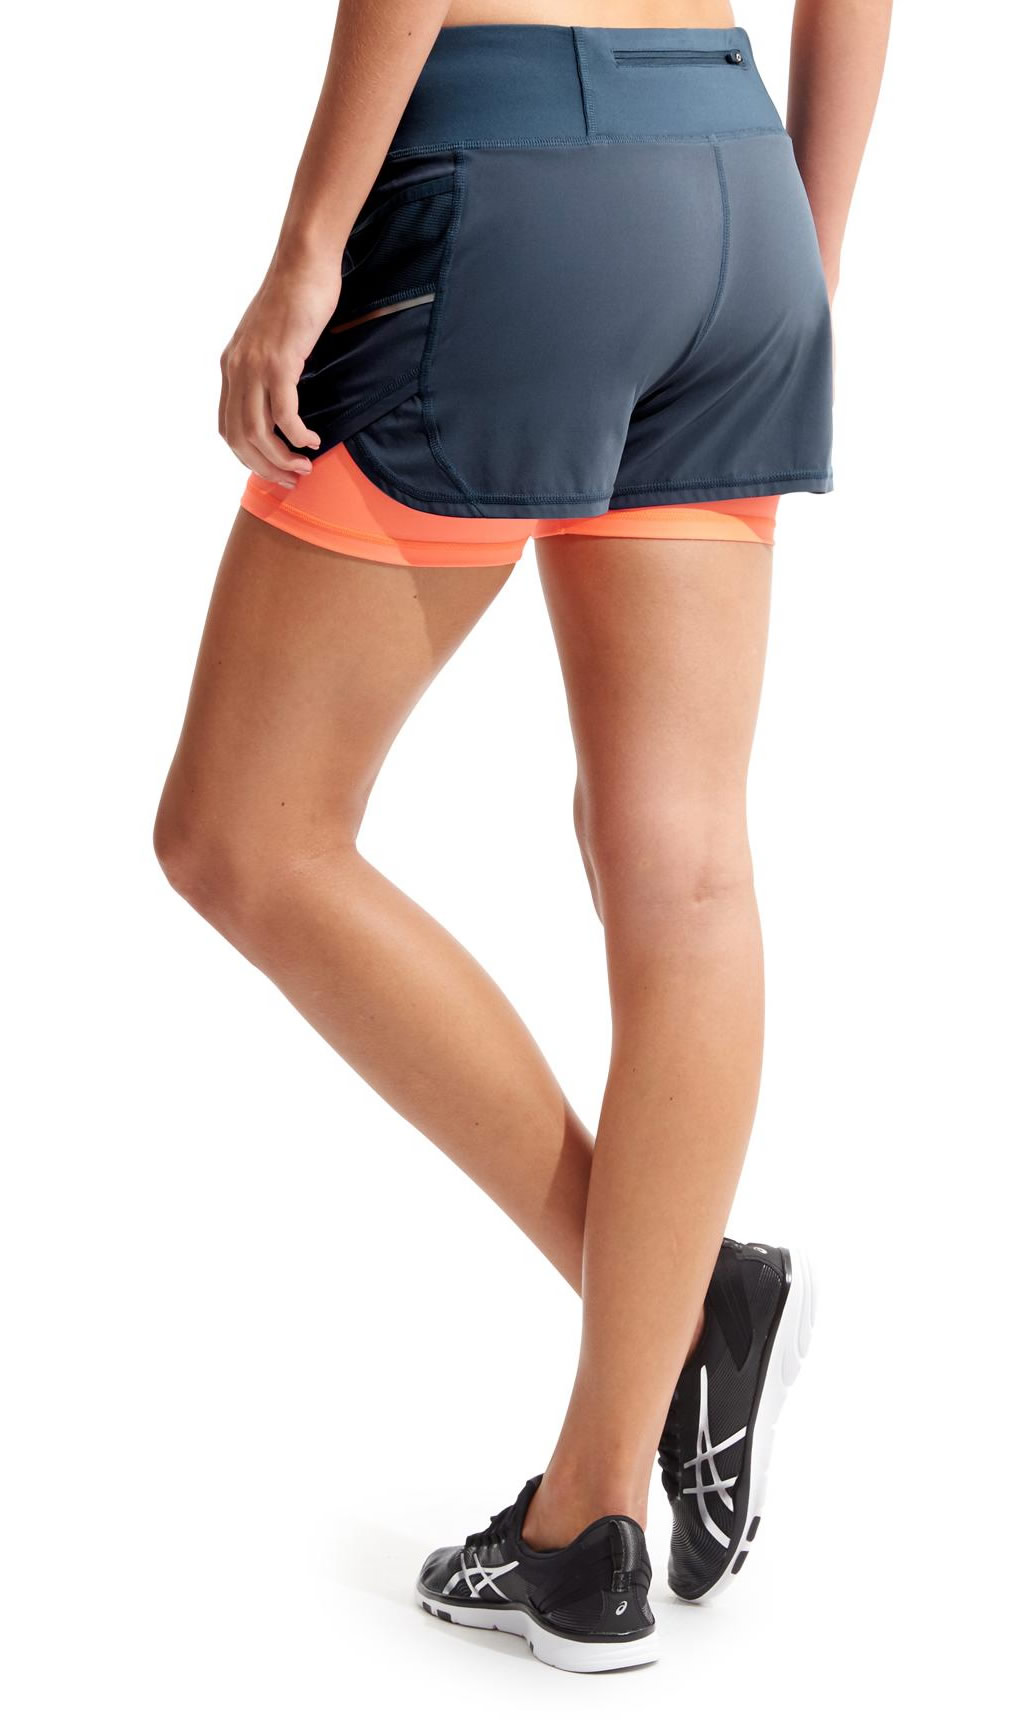 athleta shorts womens